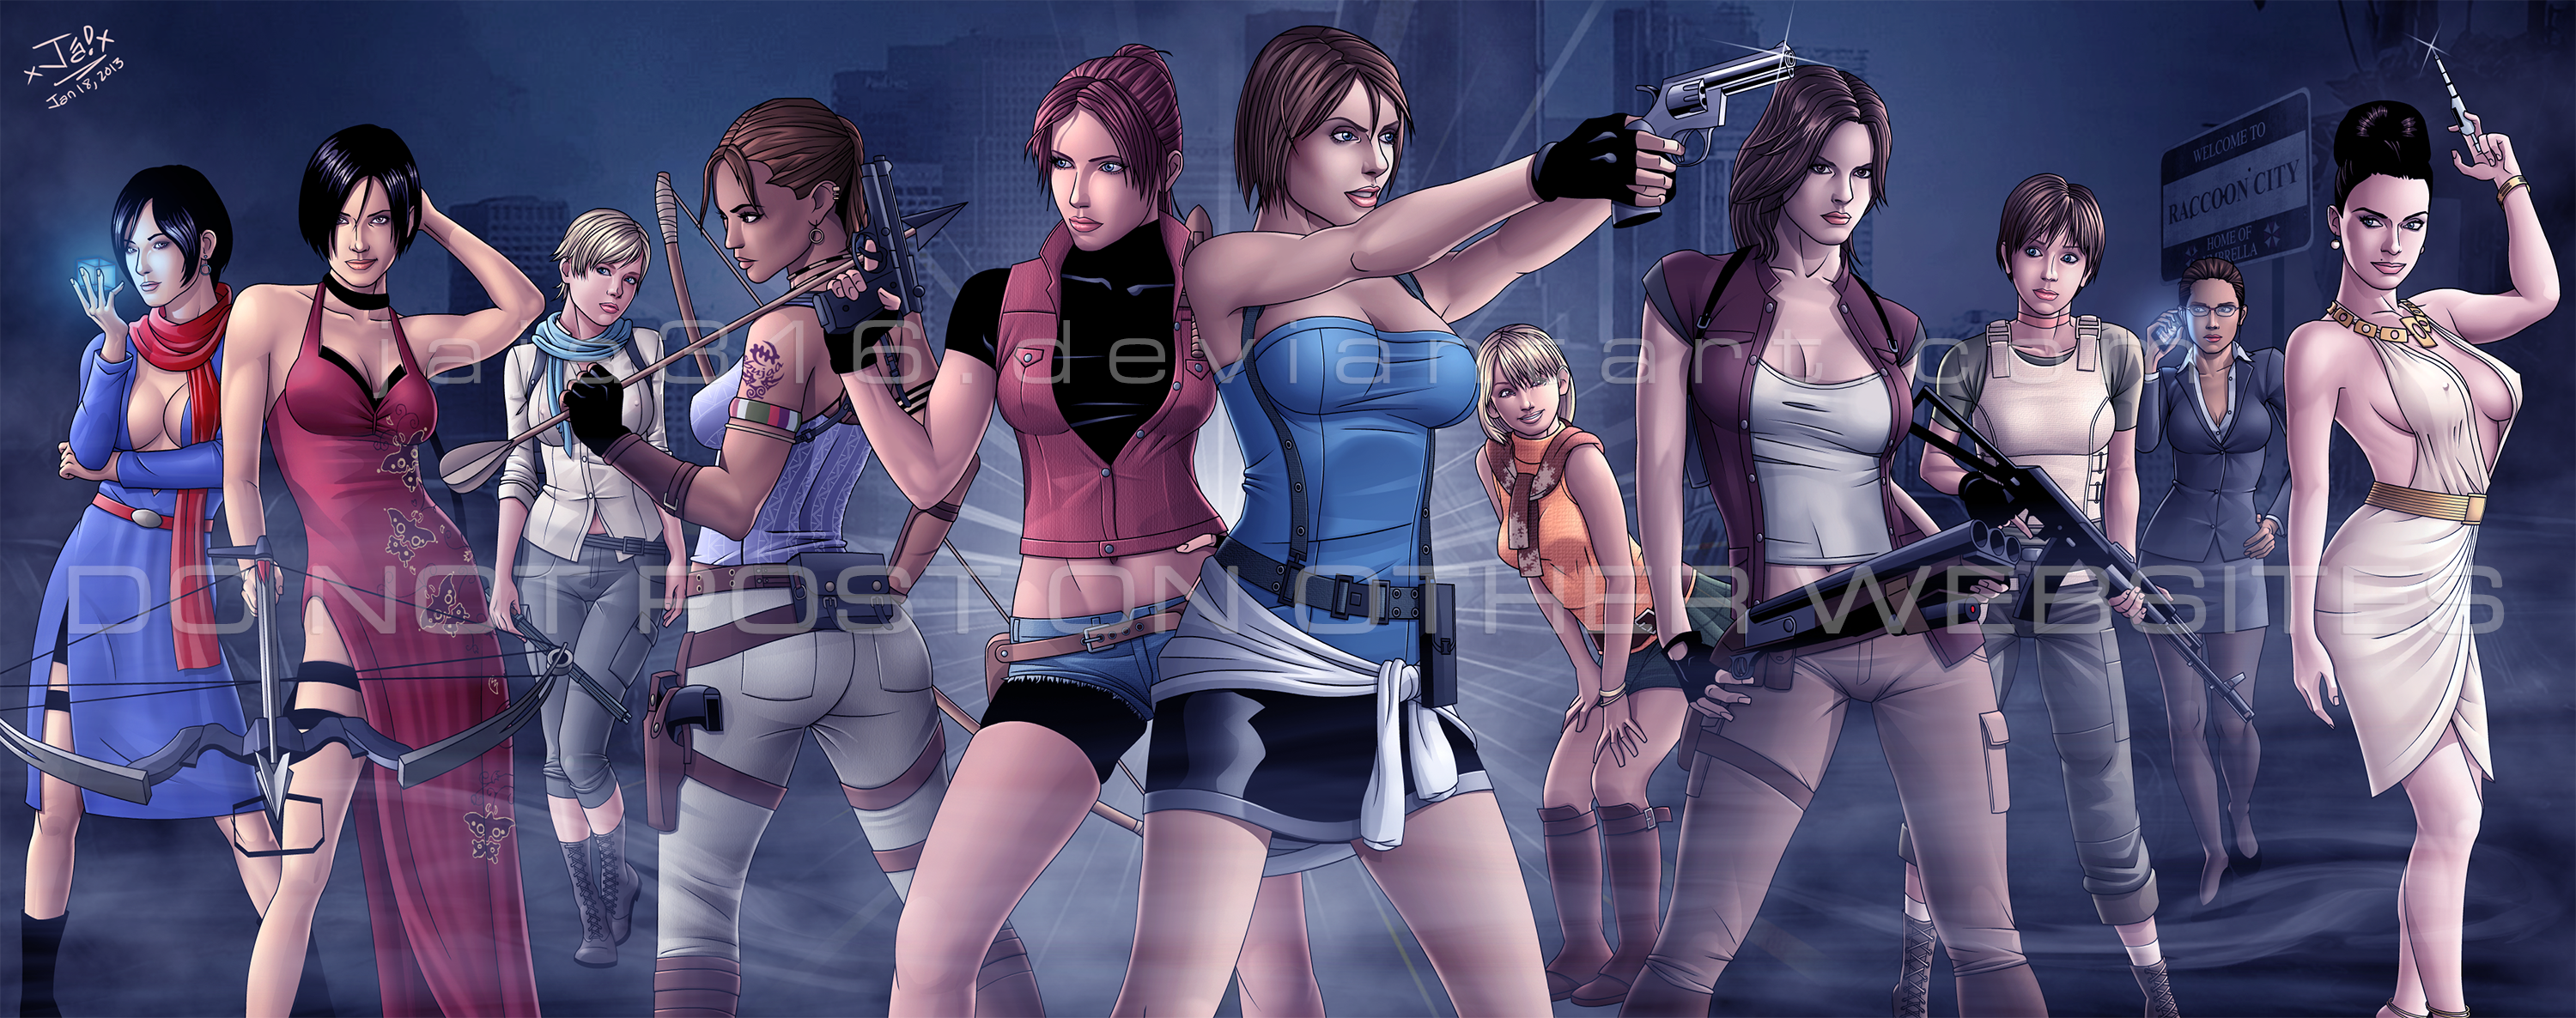 Resident evil 5 nuds girls pic exploited woman